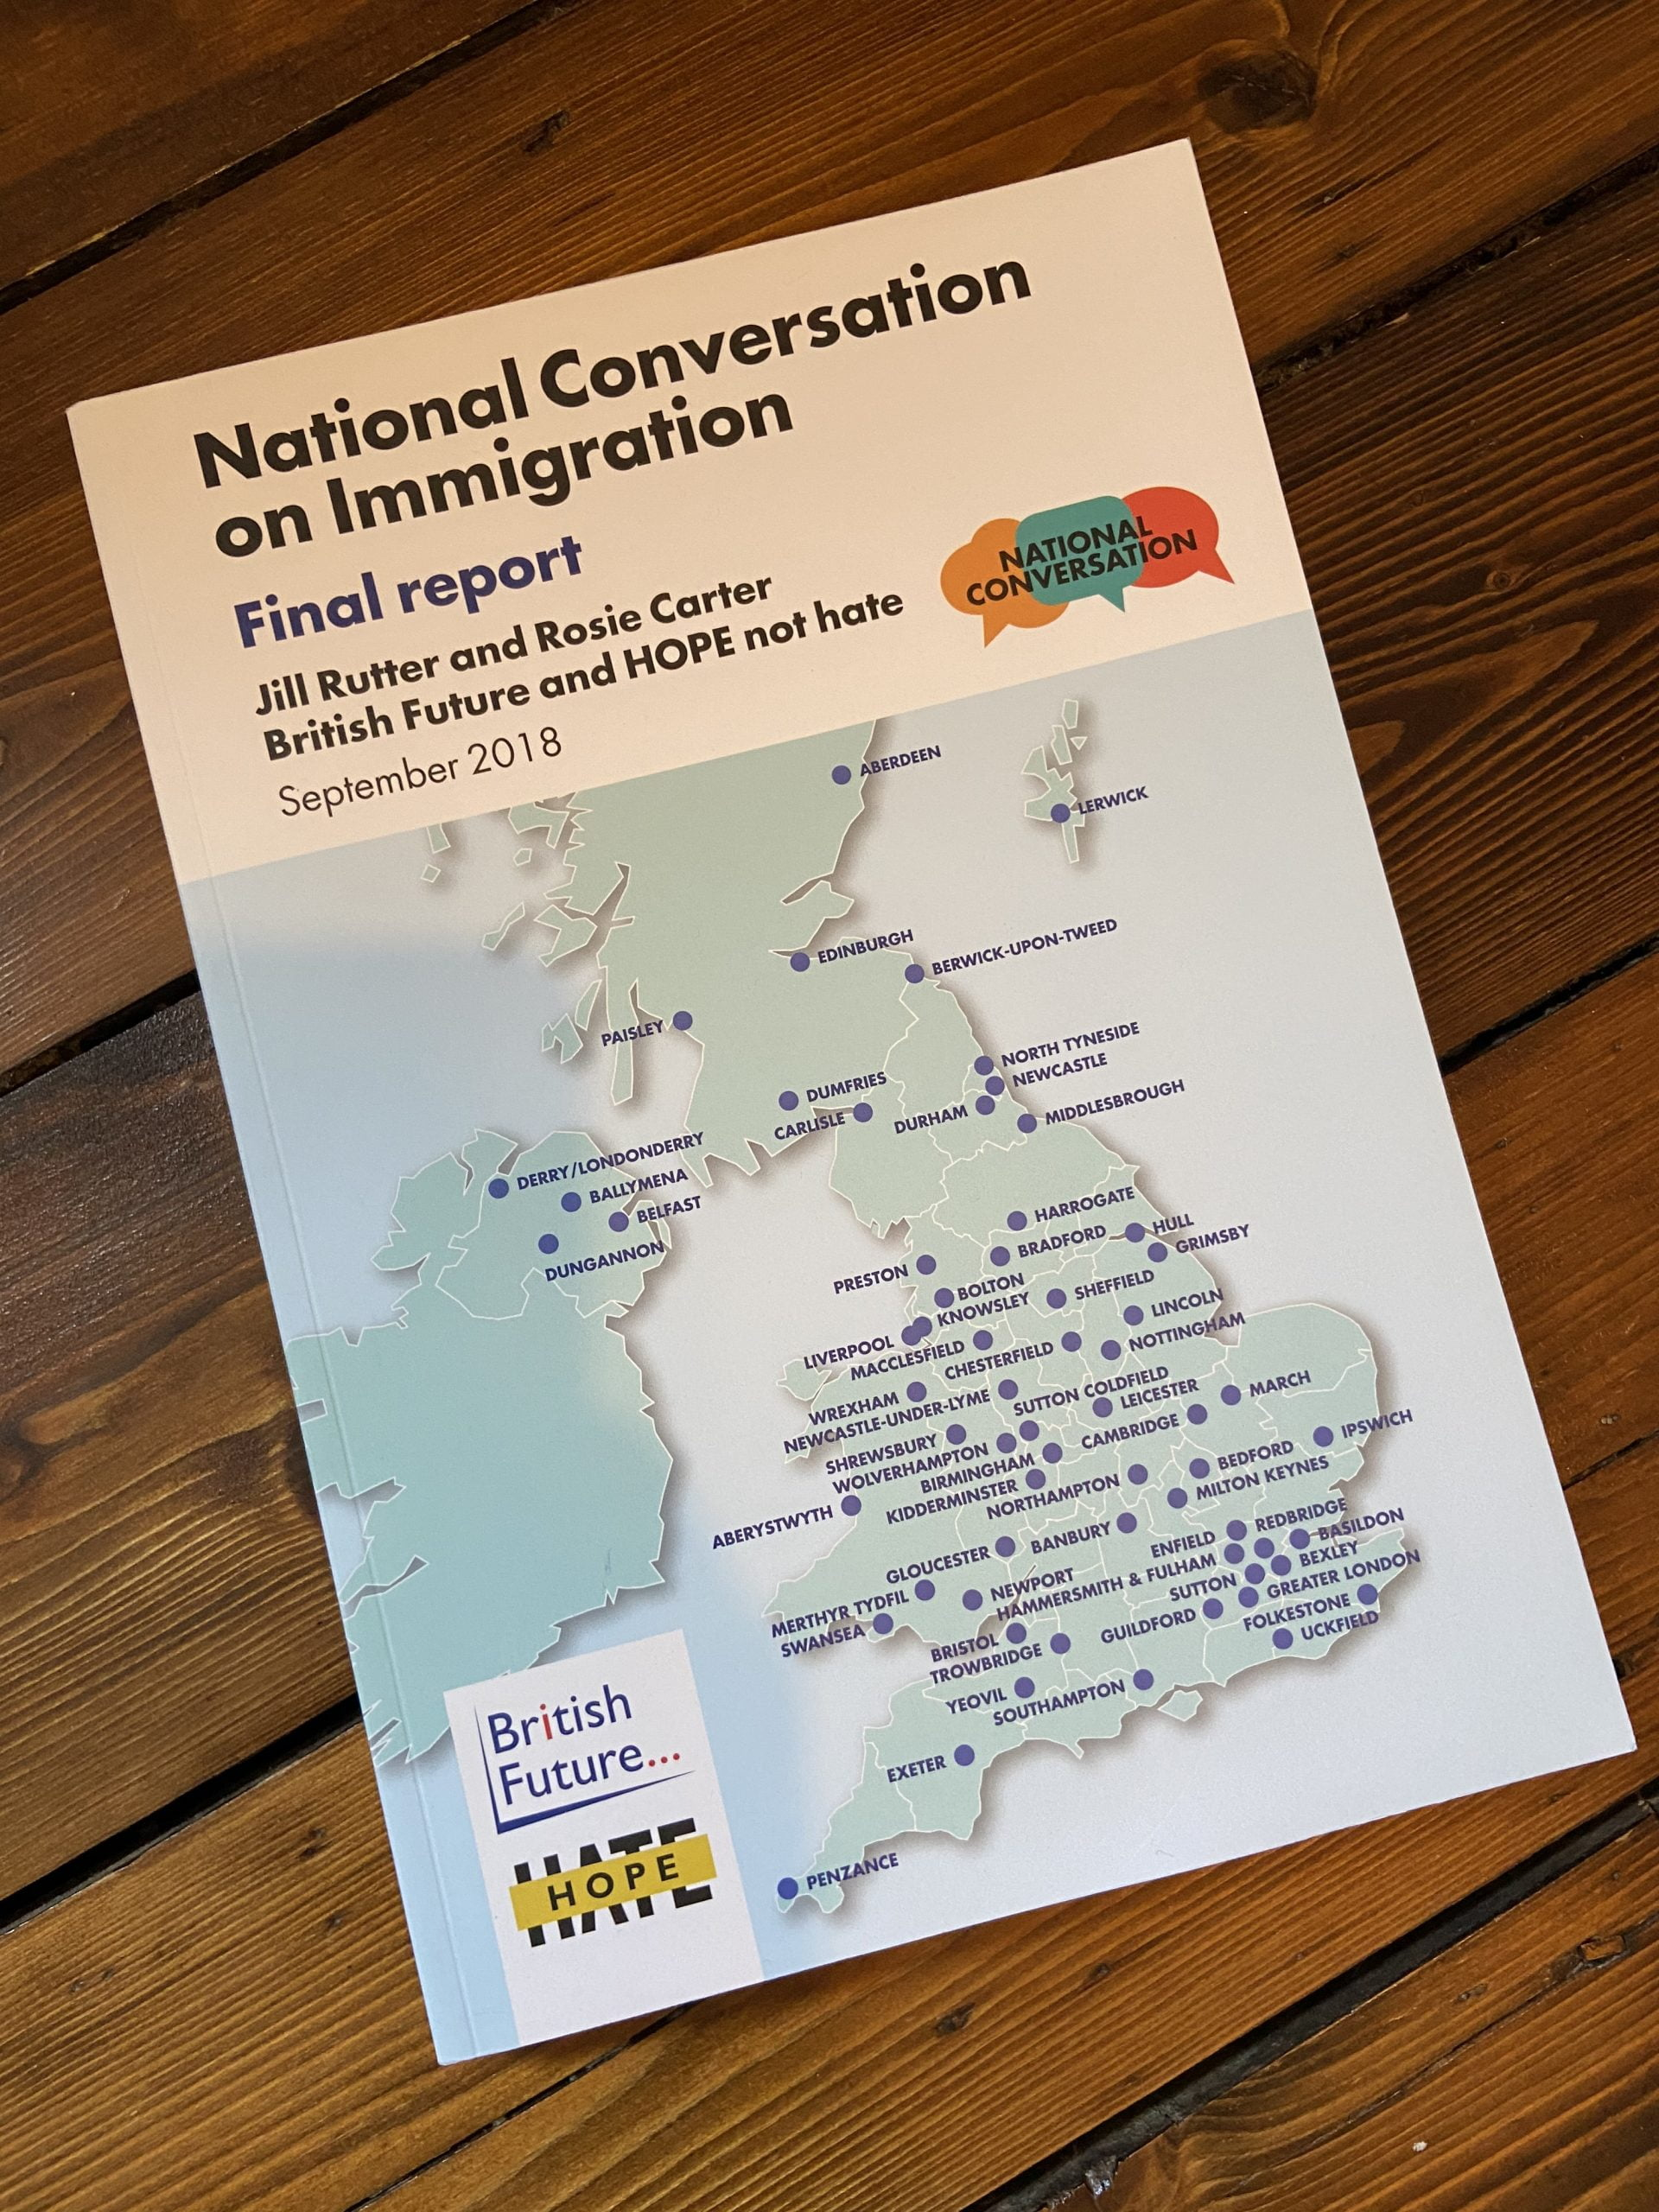 The National Conversation on Immigration: Final report